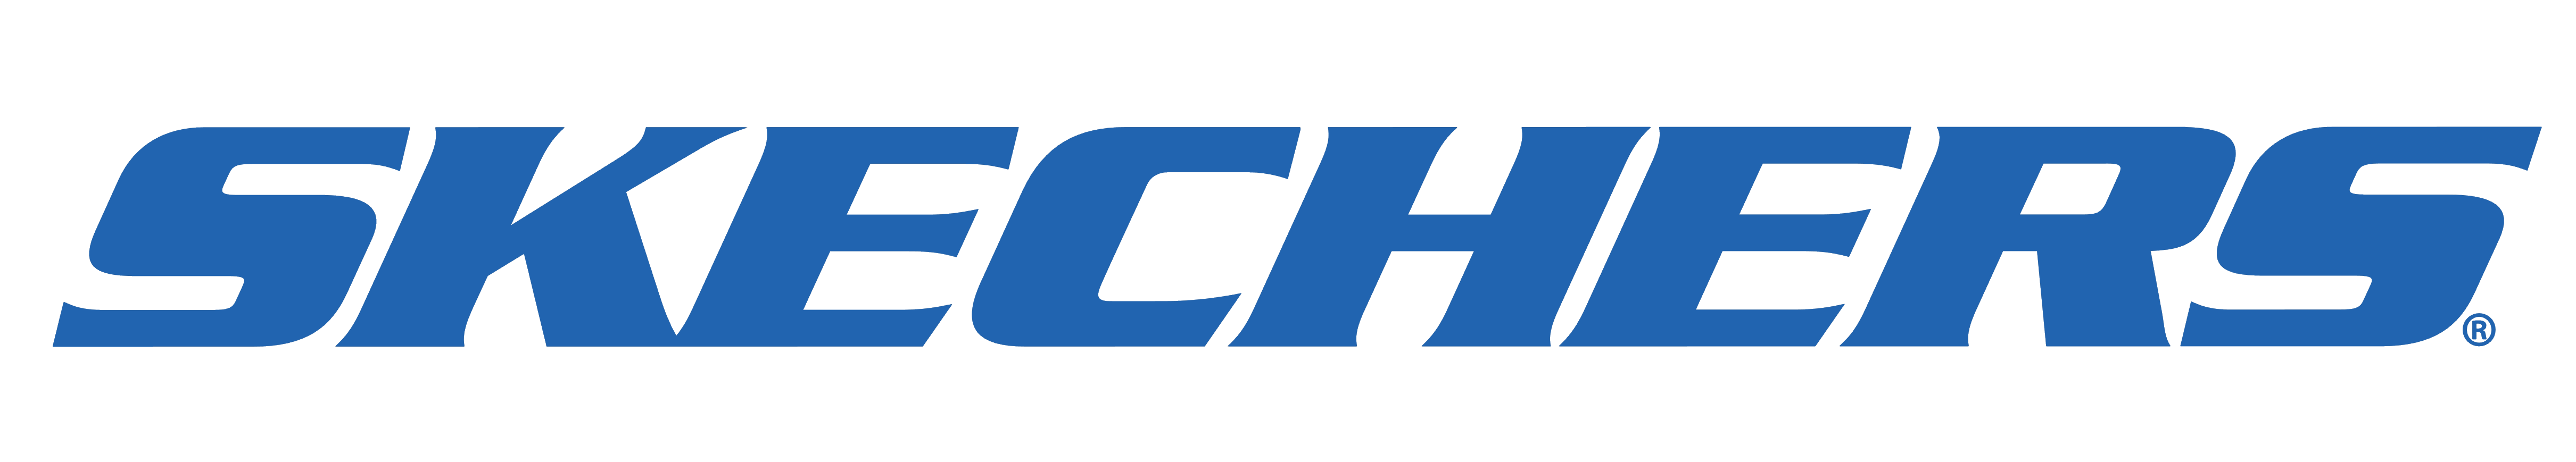 Skechers_logo_blue